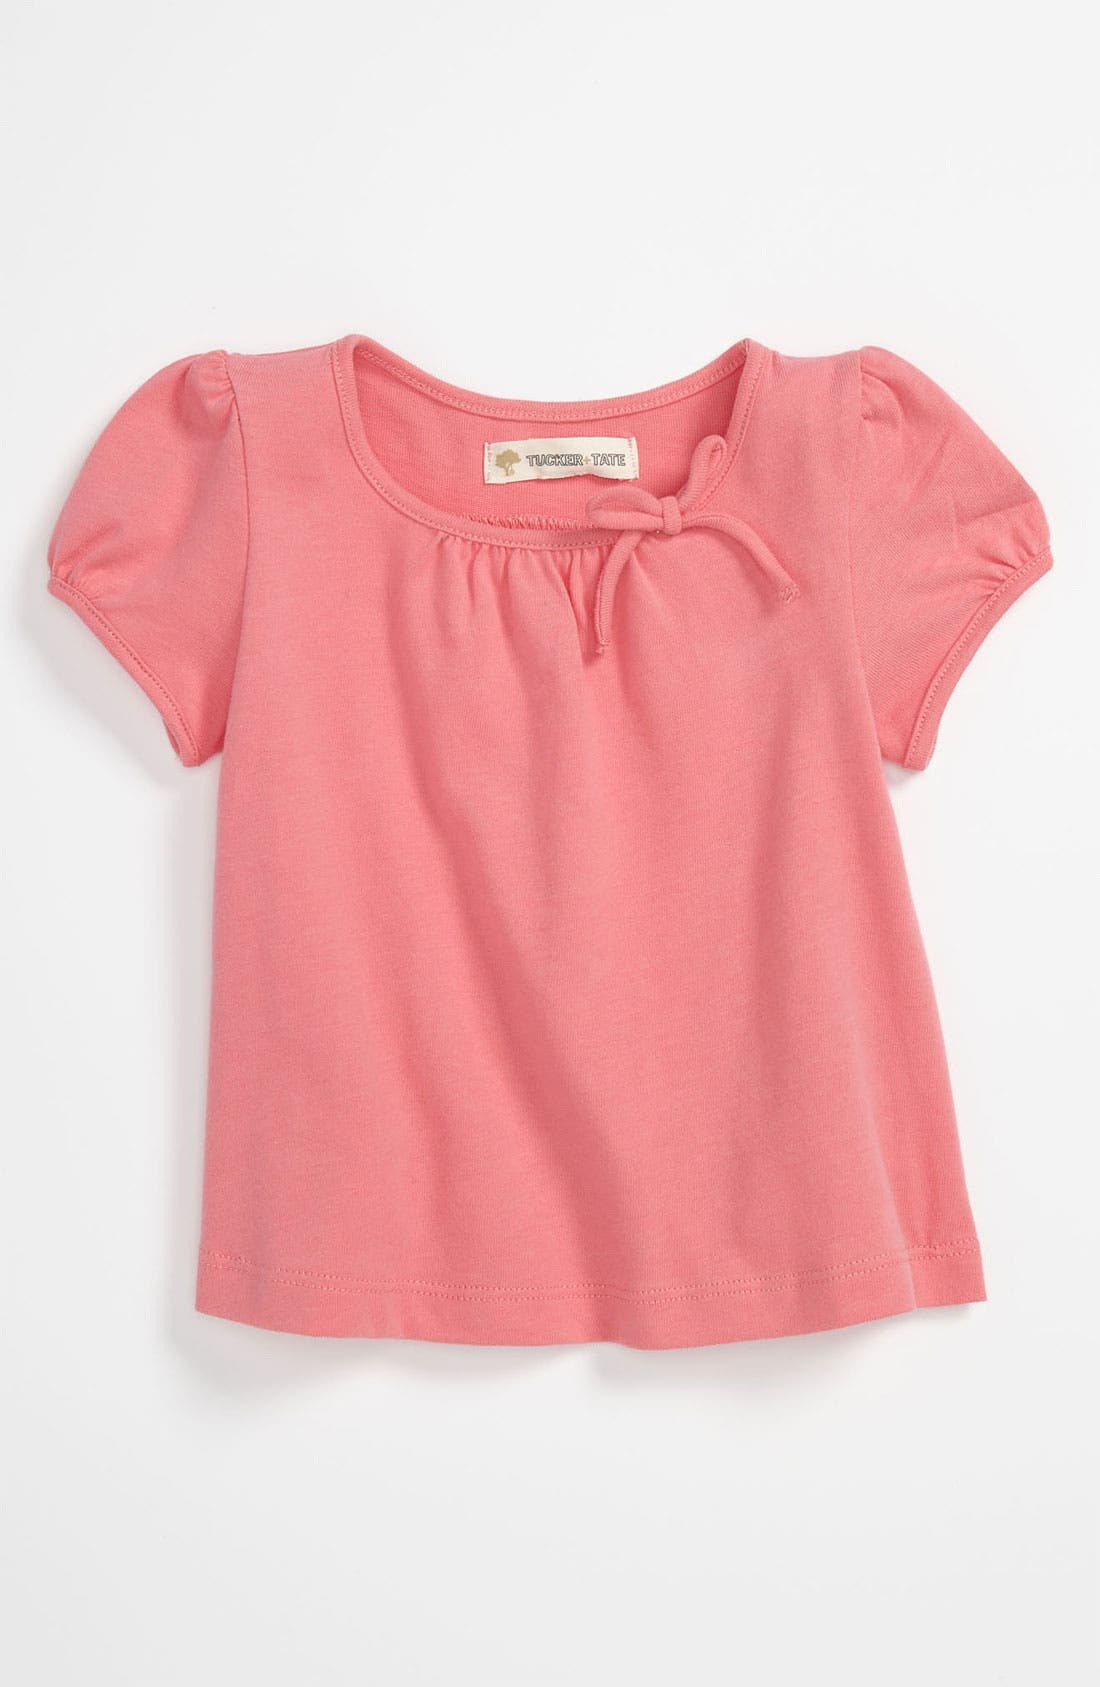 Alternate Image 1 Selected - Tucker + Tate 'Molly' Top (Toddler)